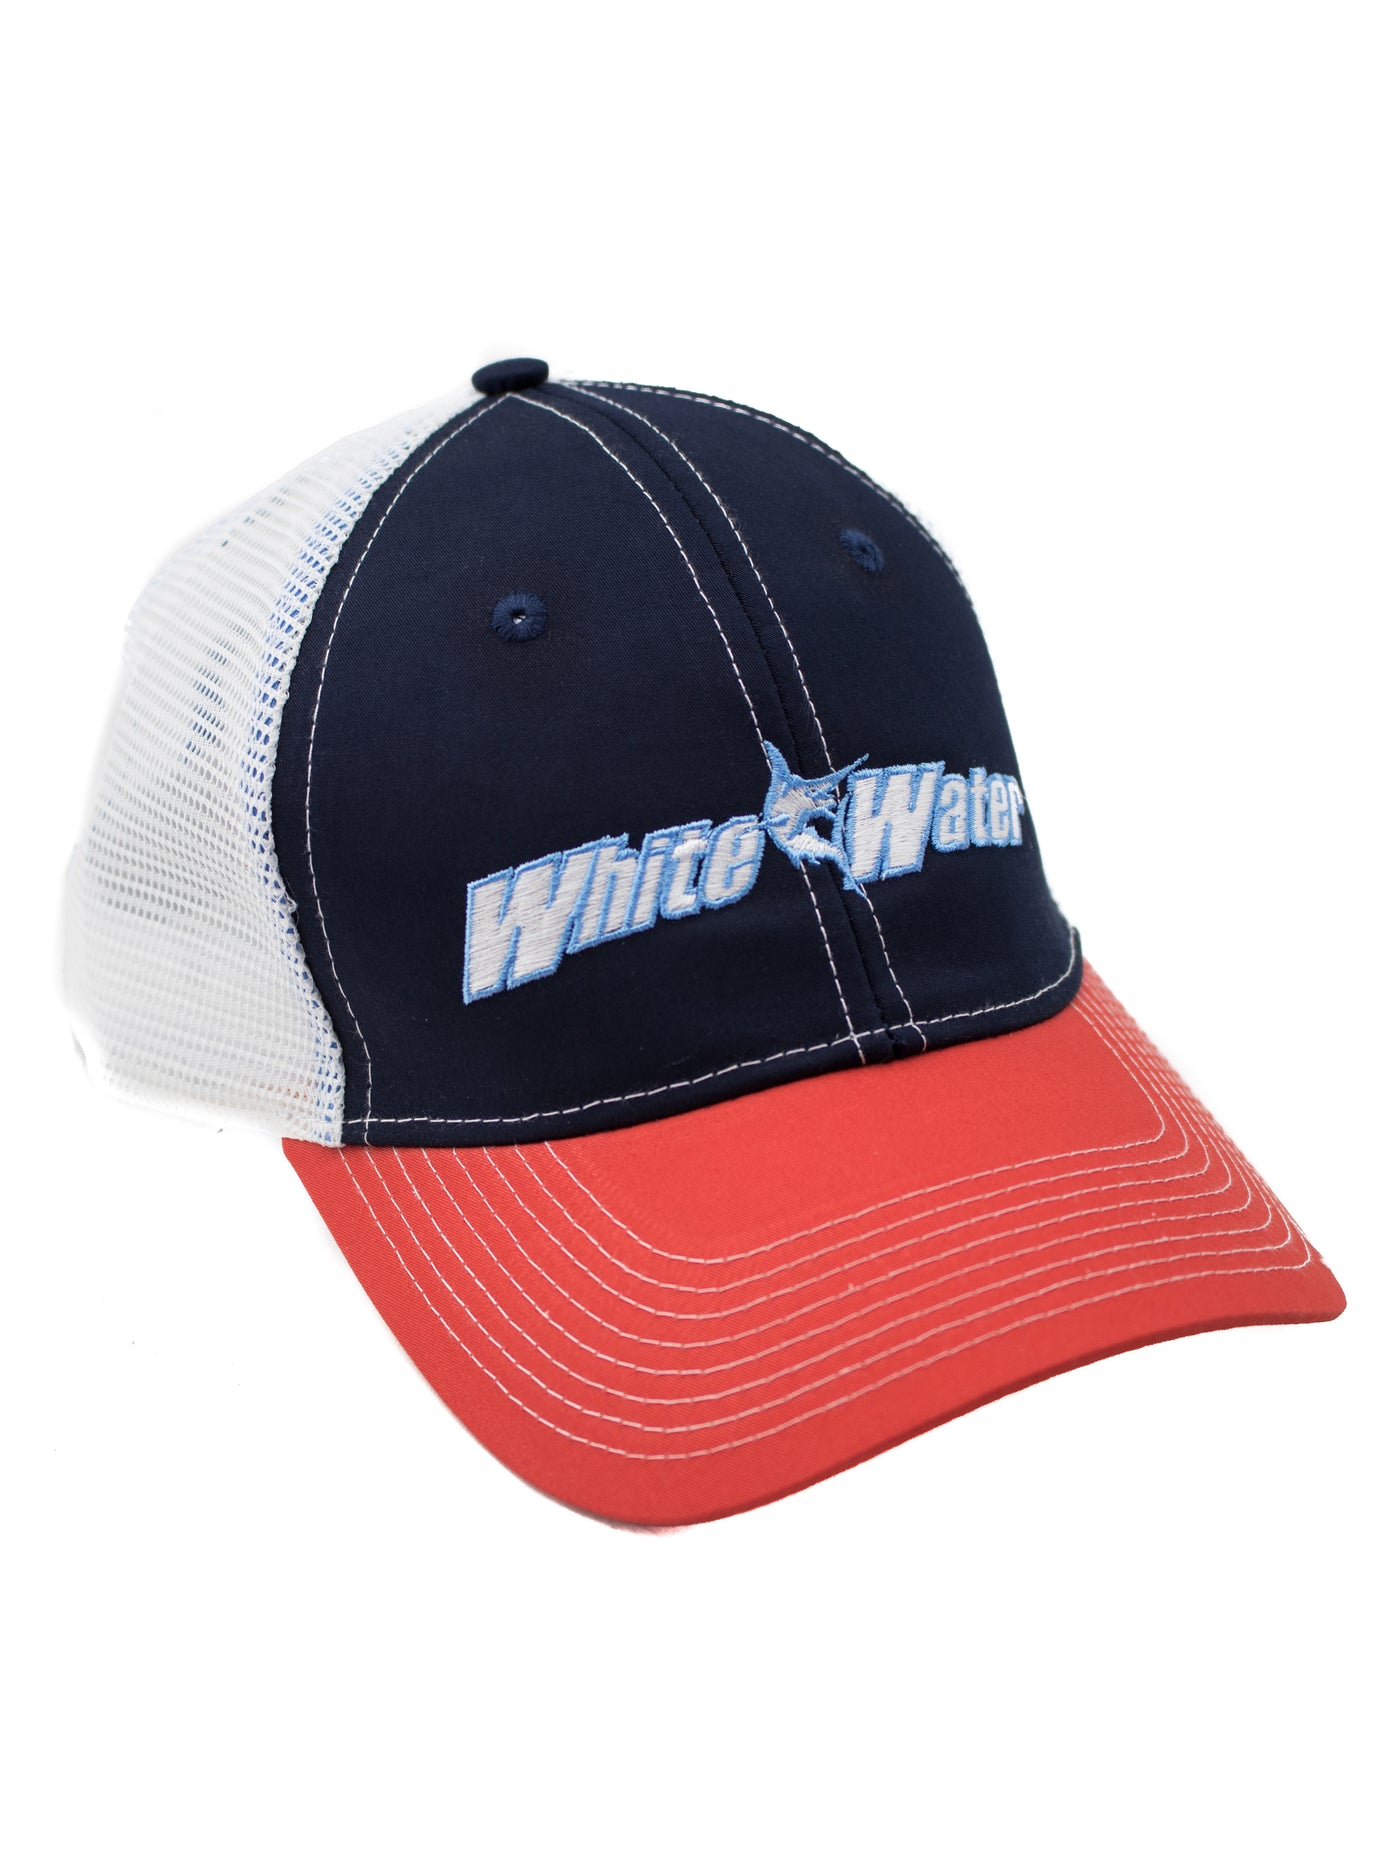 b724a5648b8 White Water Life American Trucker Hat – White Water Outfitters